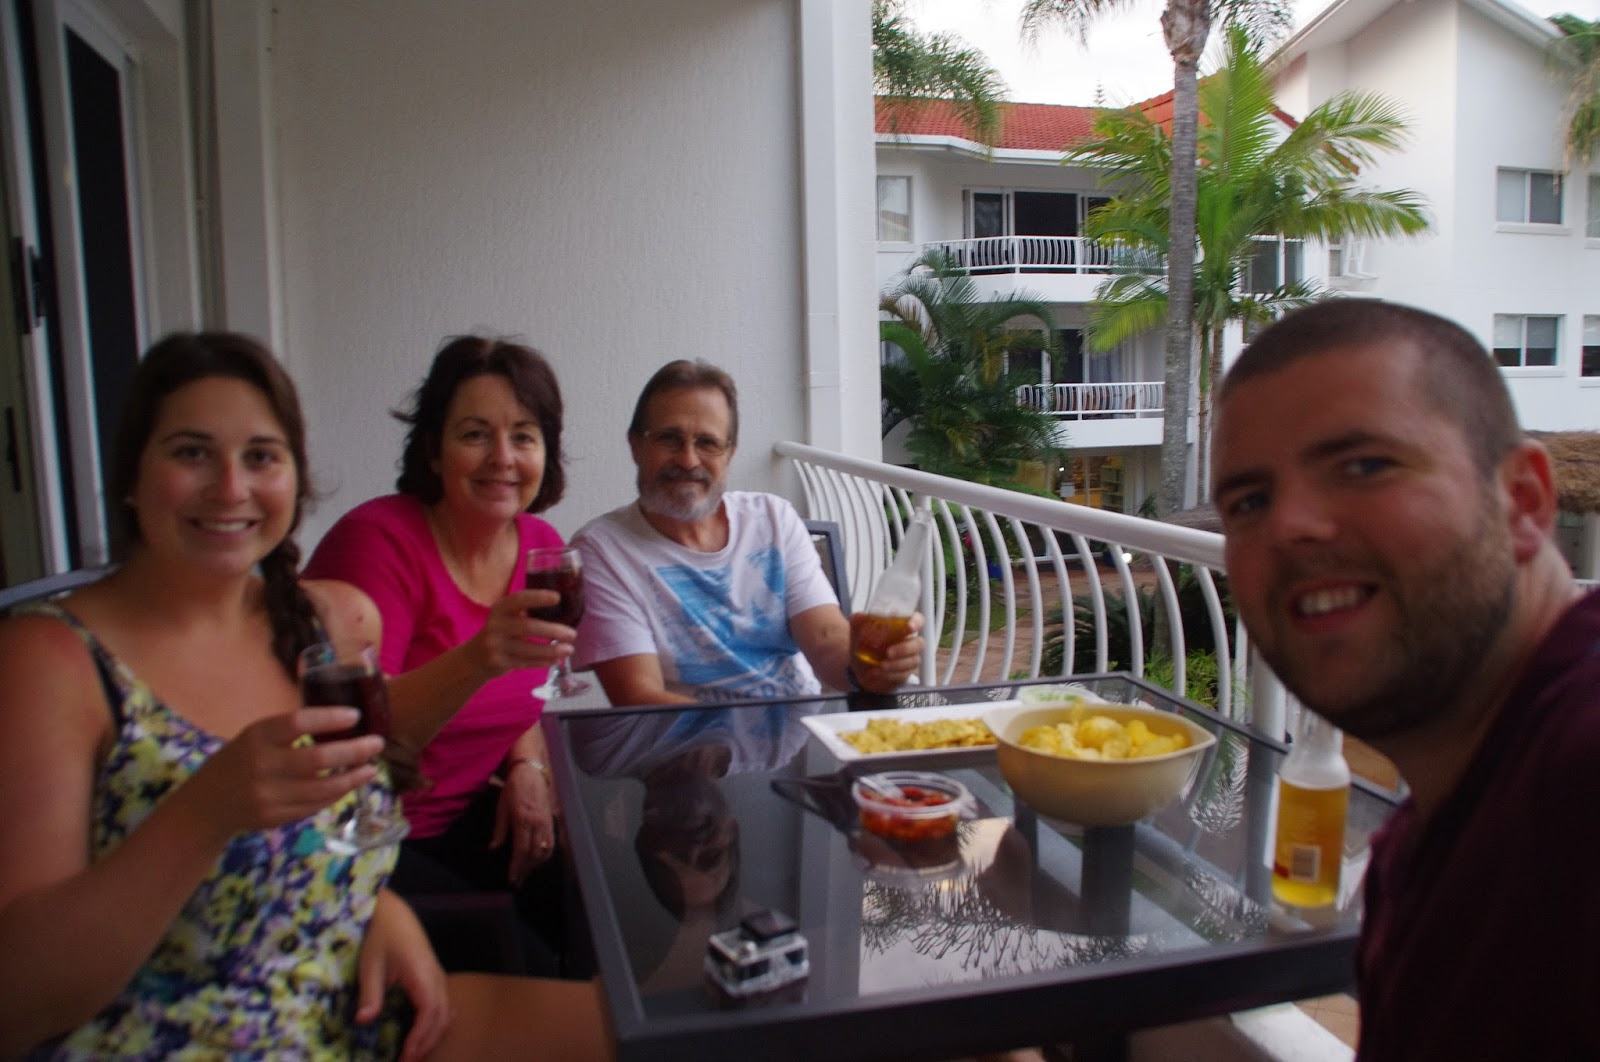 Le beach Apartments Burleigh Heads Family on Balcony